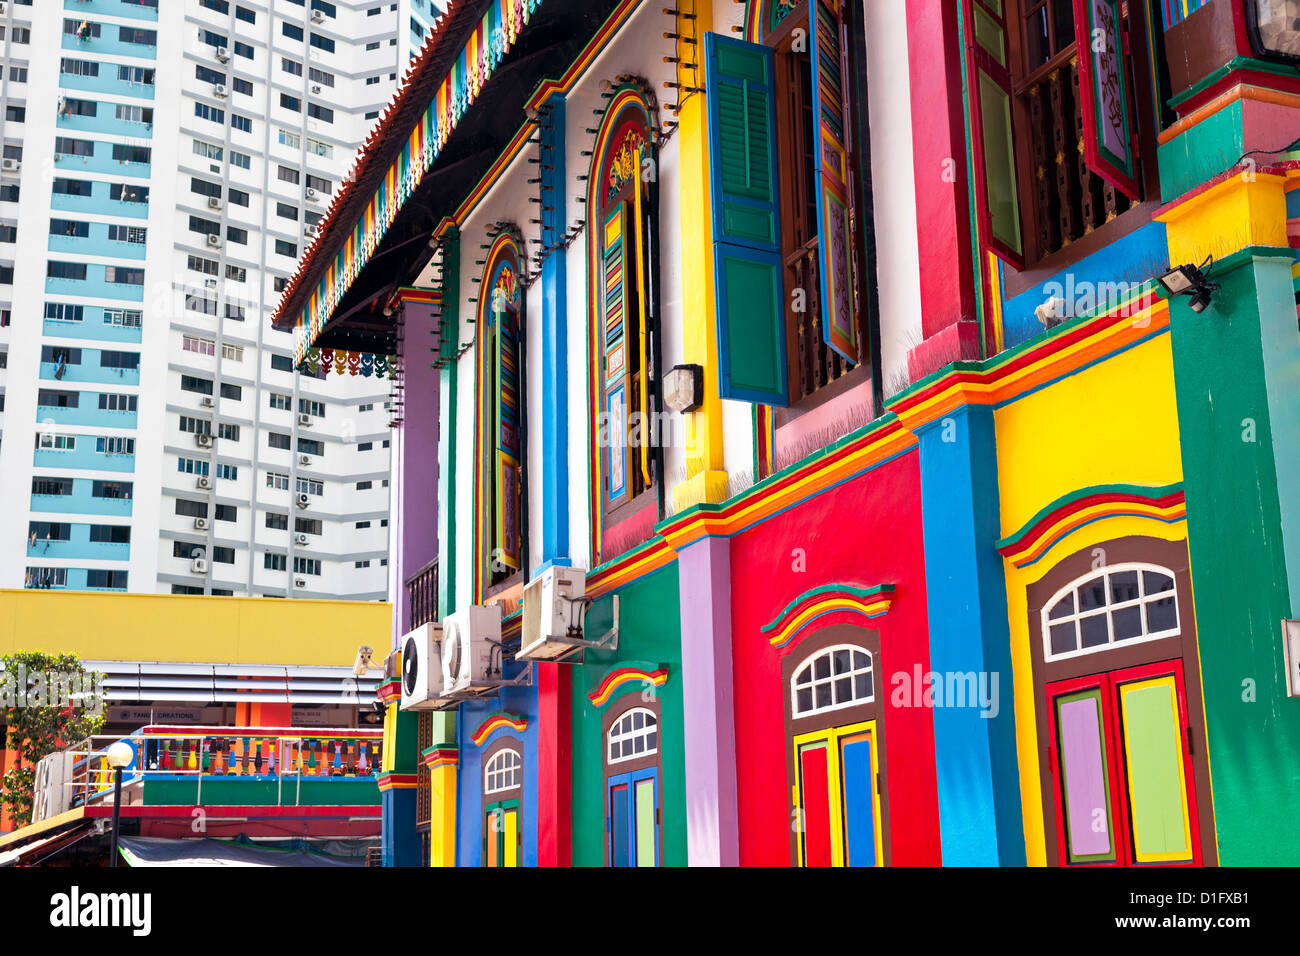 Colourful Heritage Villa, the residence of Tan Teng Niah, Little India, Singapore, Southeast Asia, Asia - Stock Image